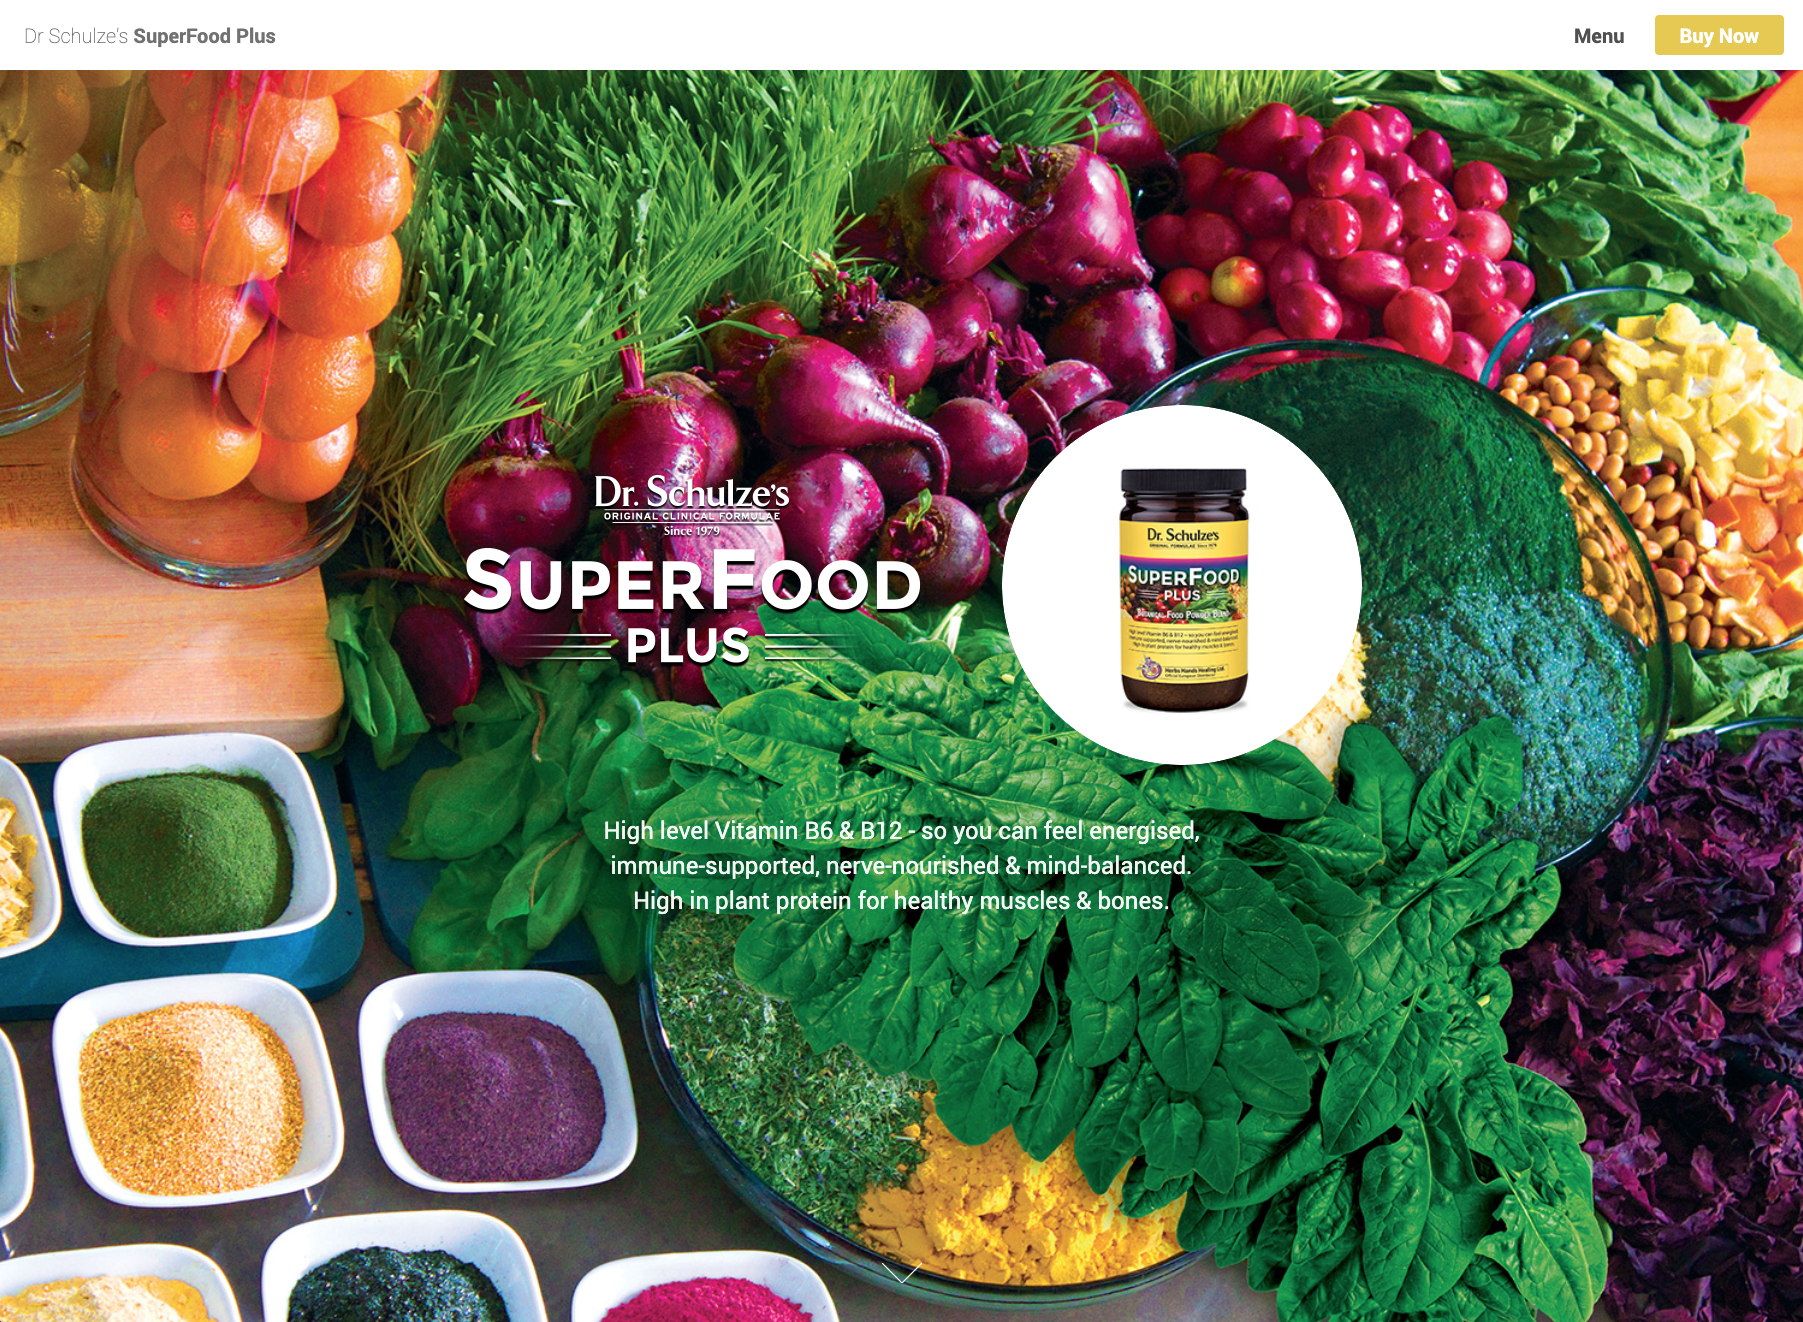 Superfood Plus Website